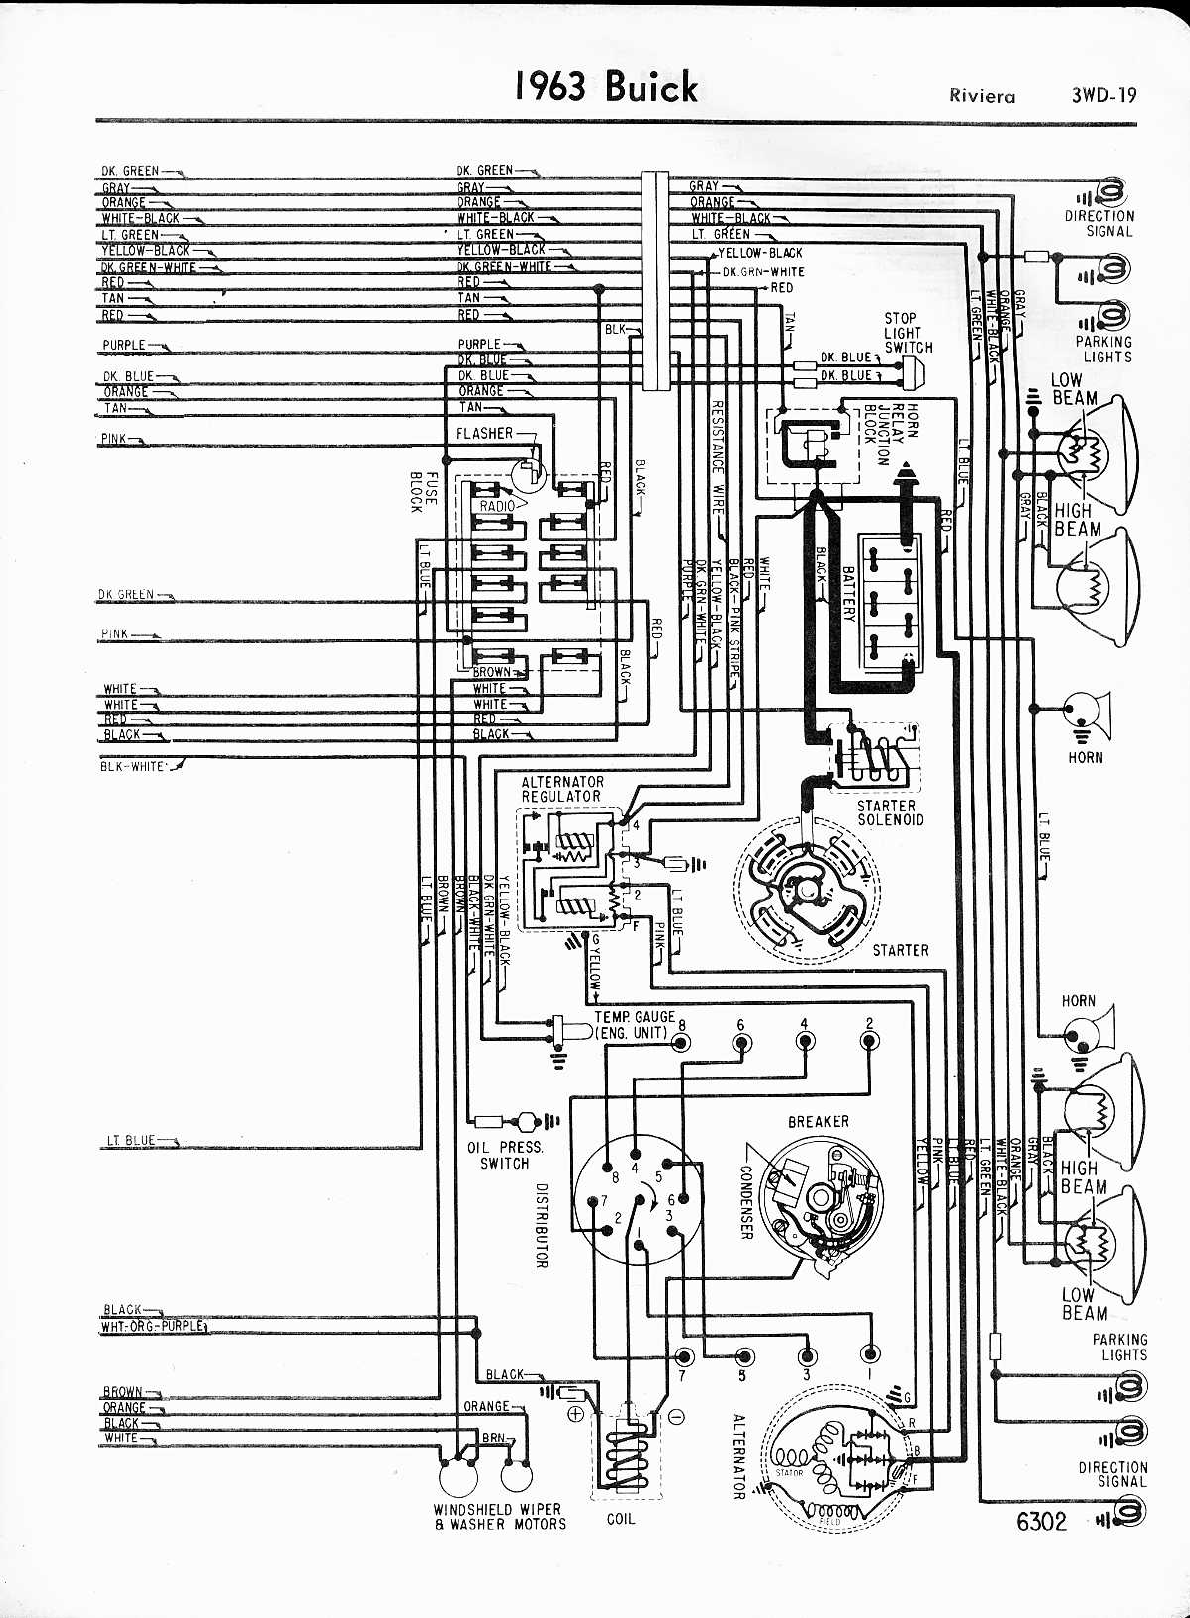 buick riviera 1963 1965 misc documents wiring diagrams pdf rh manuals co